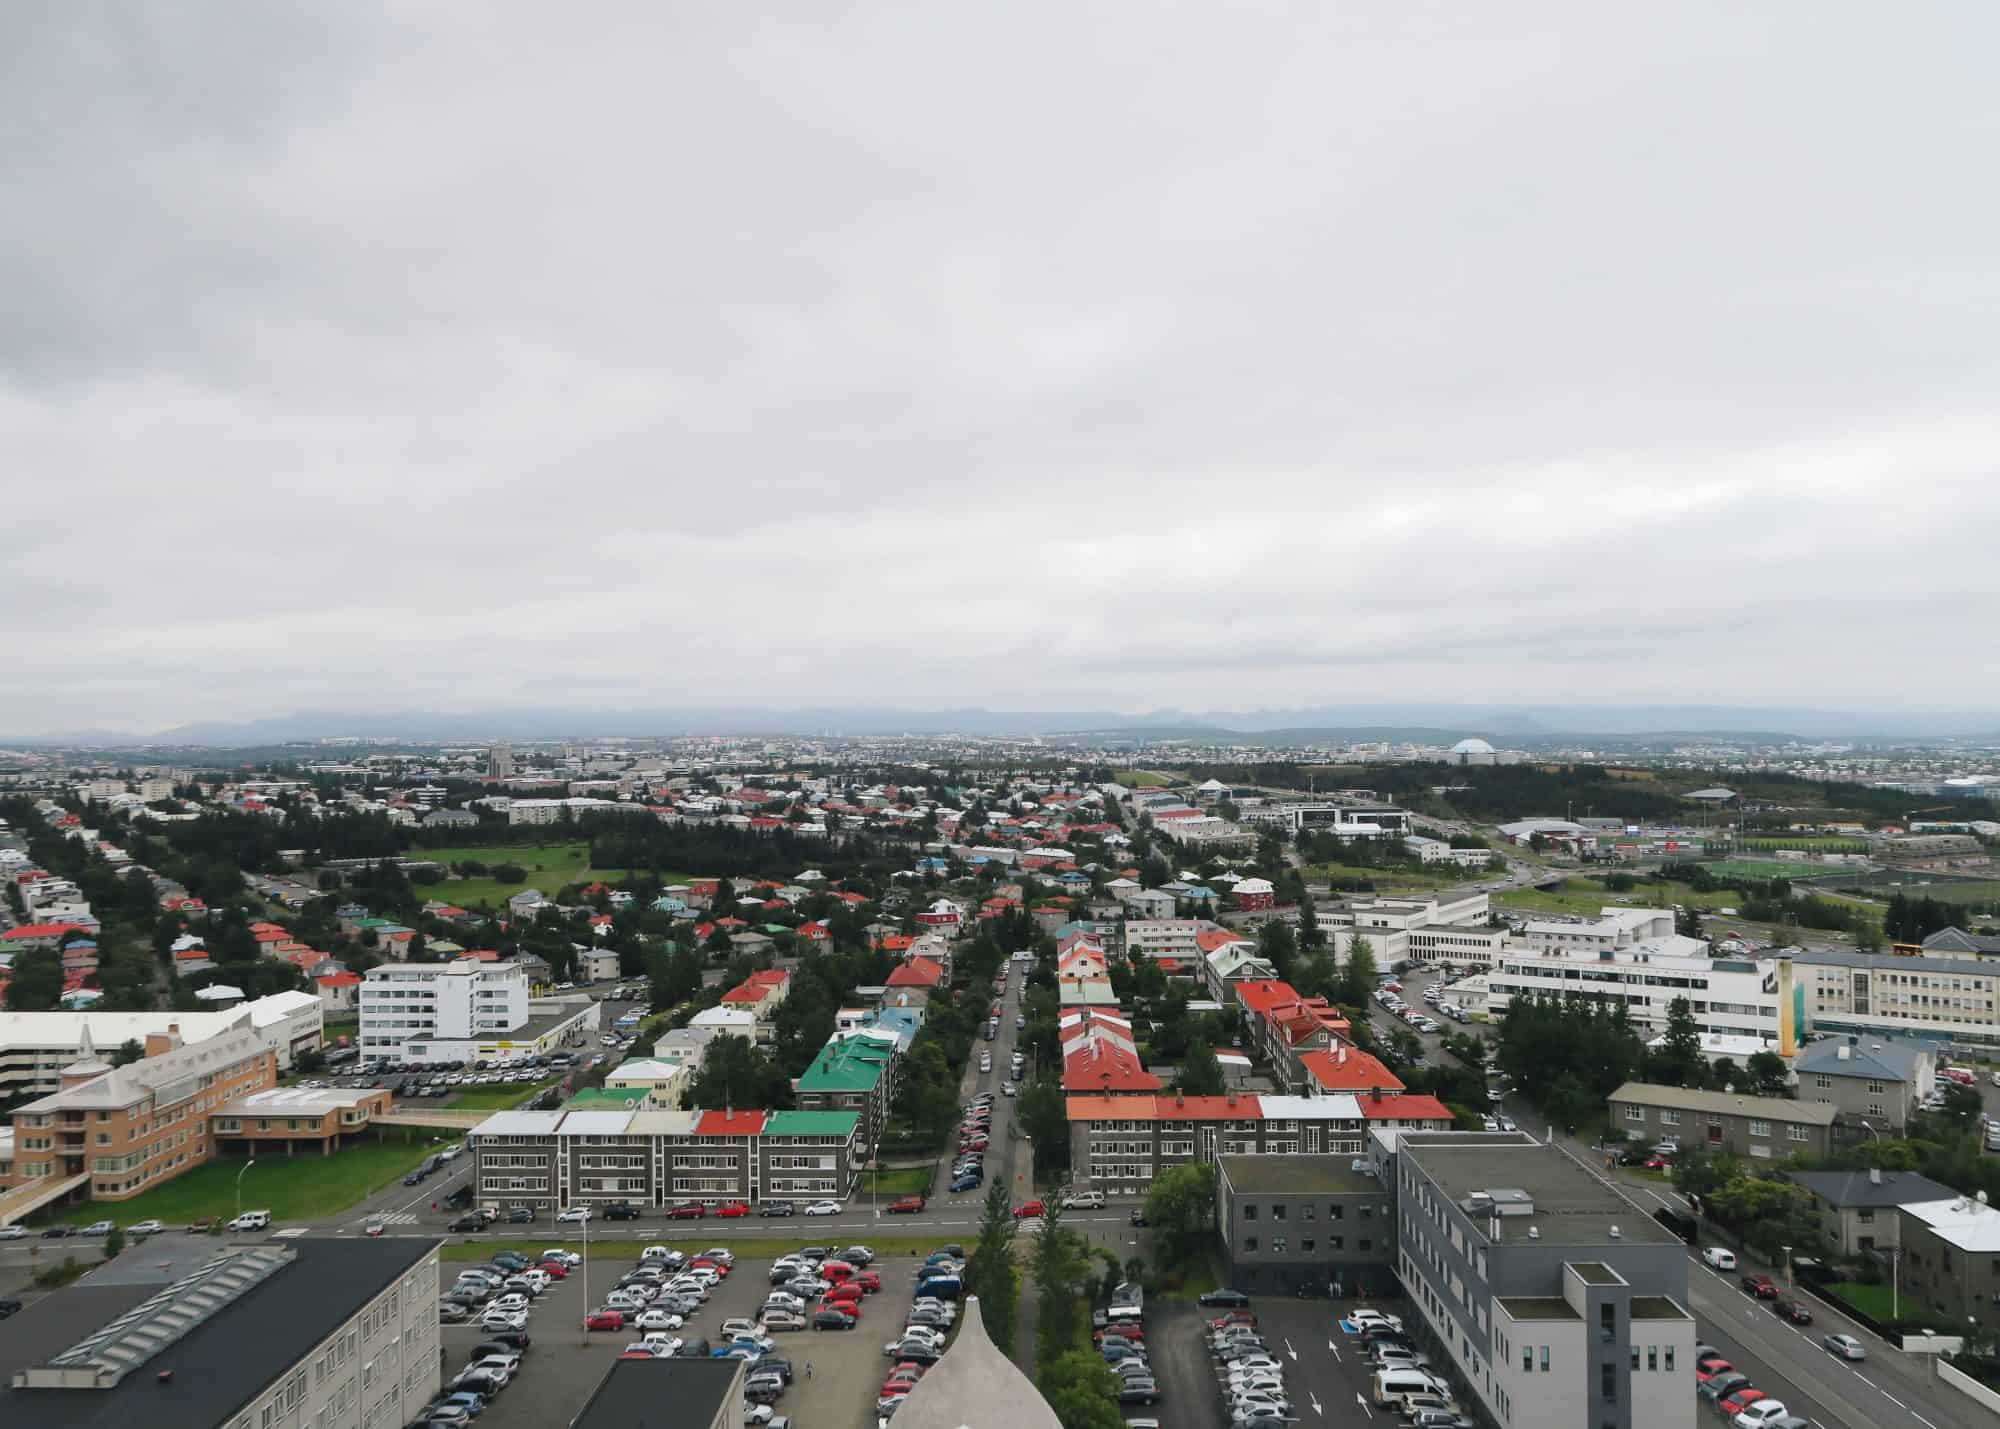 View from the top of the Hallgrimskirkja Church in Reykjavik | Diary of a Toronto Girl, a Canadian lifestyle blog